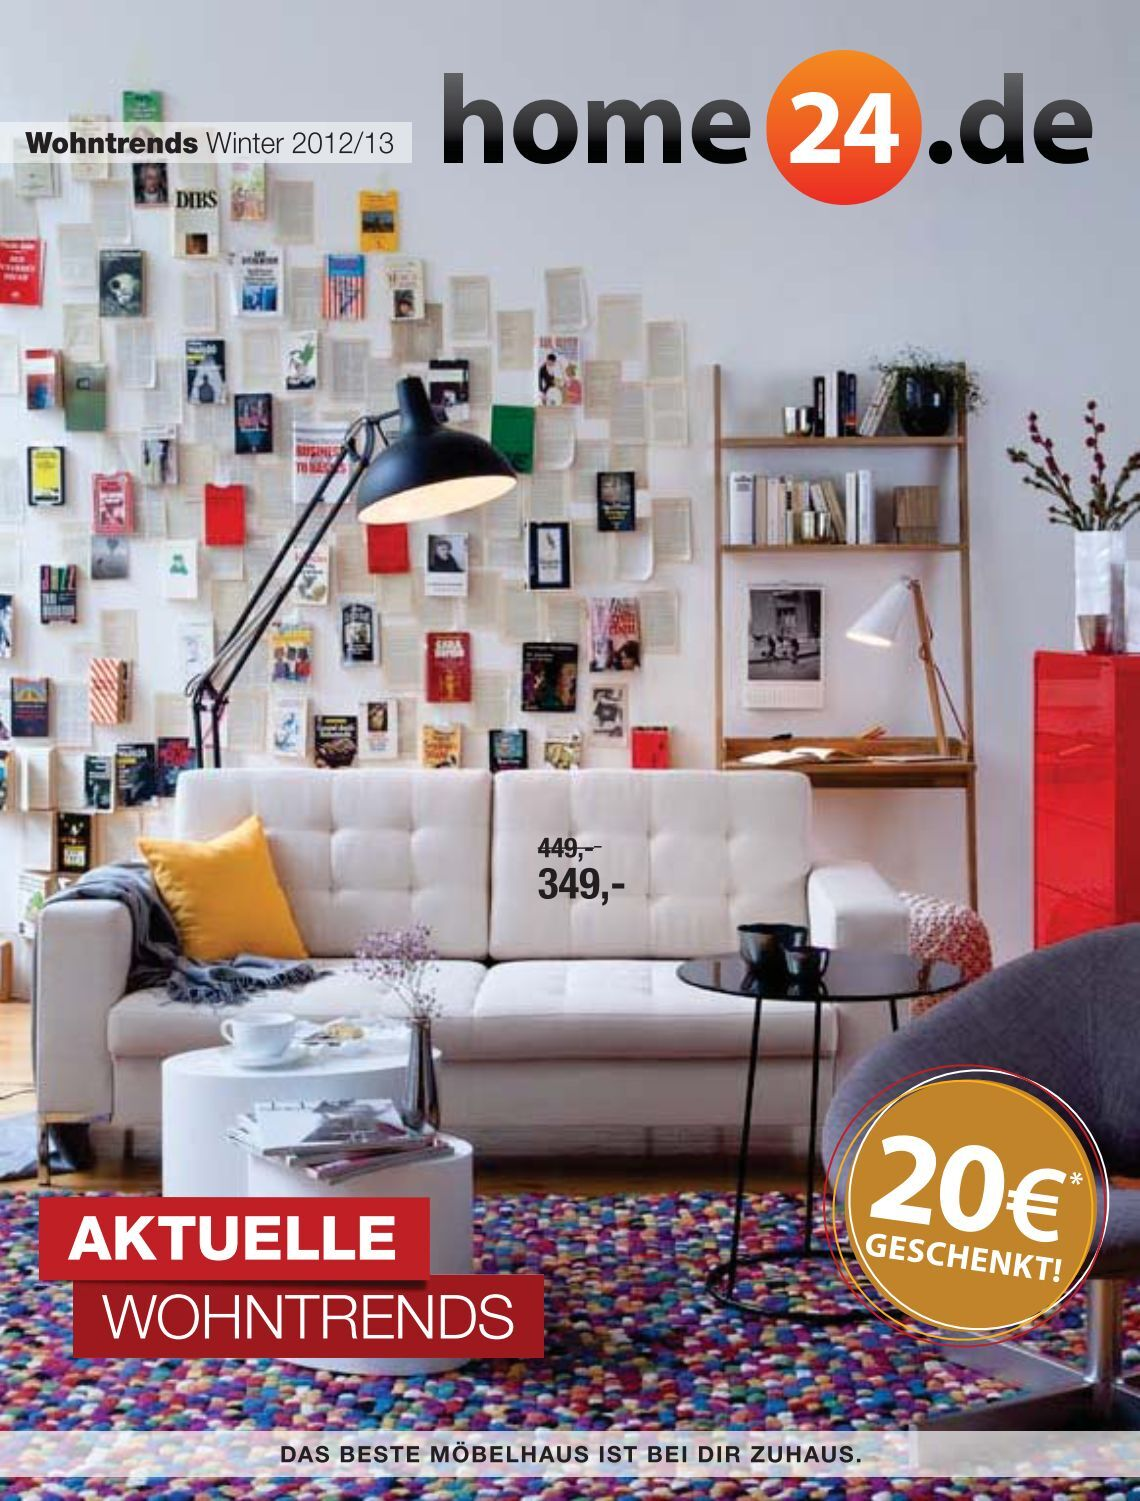 5 Free Magazines From Steffi